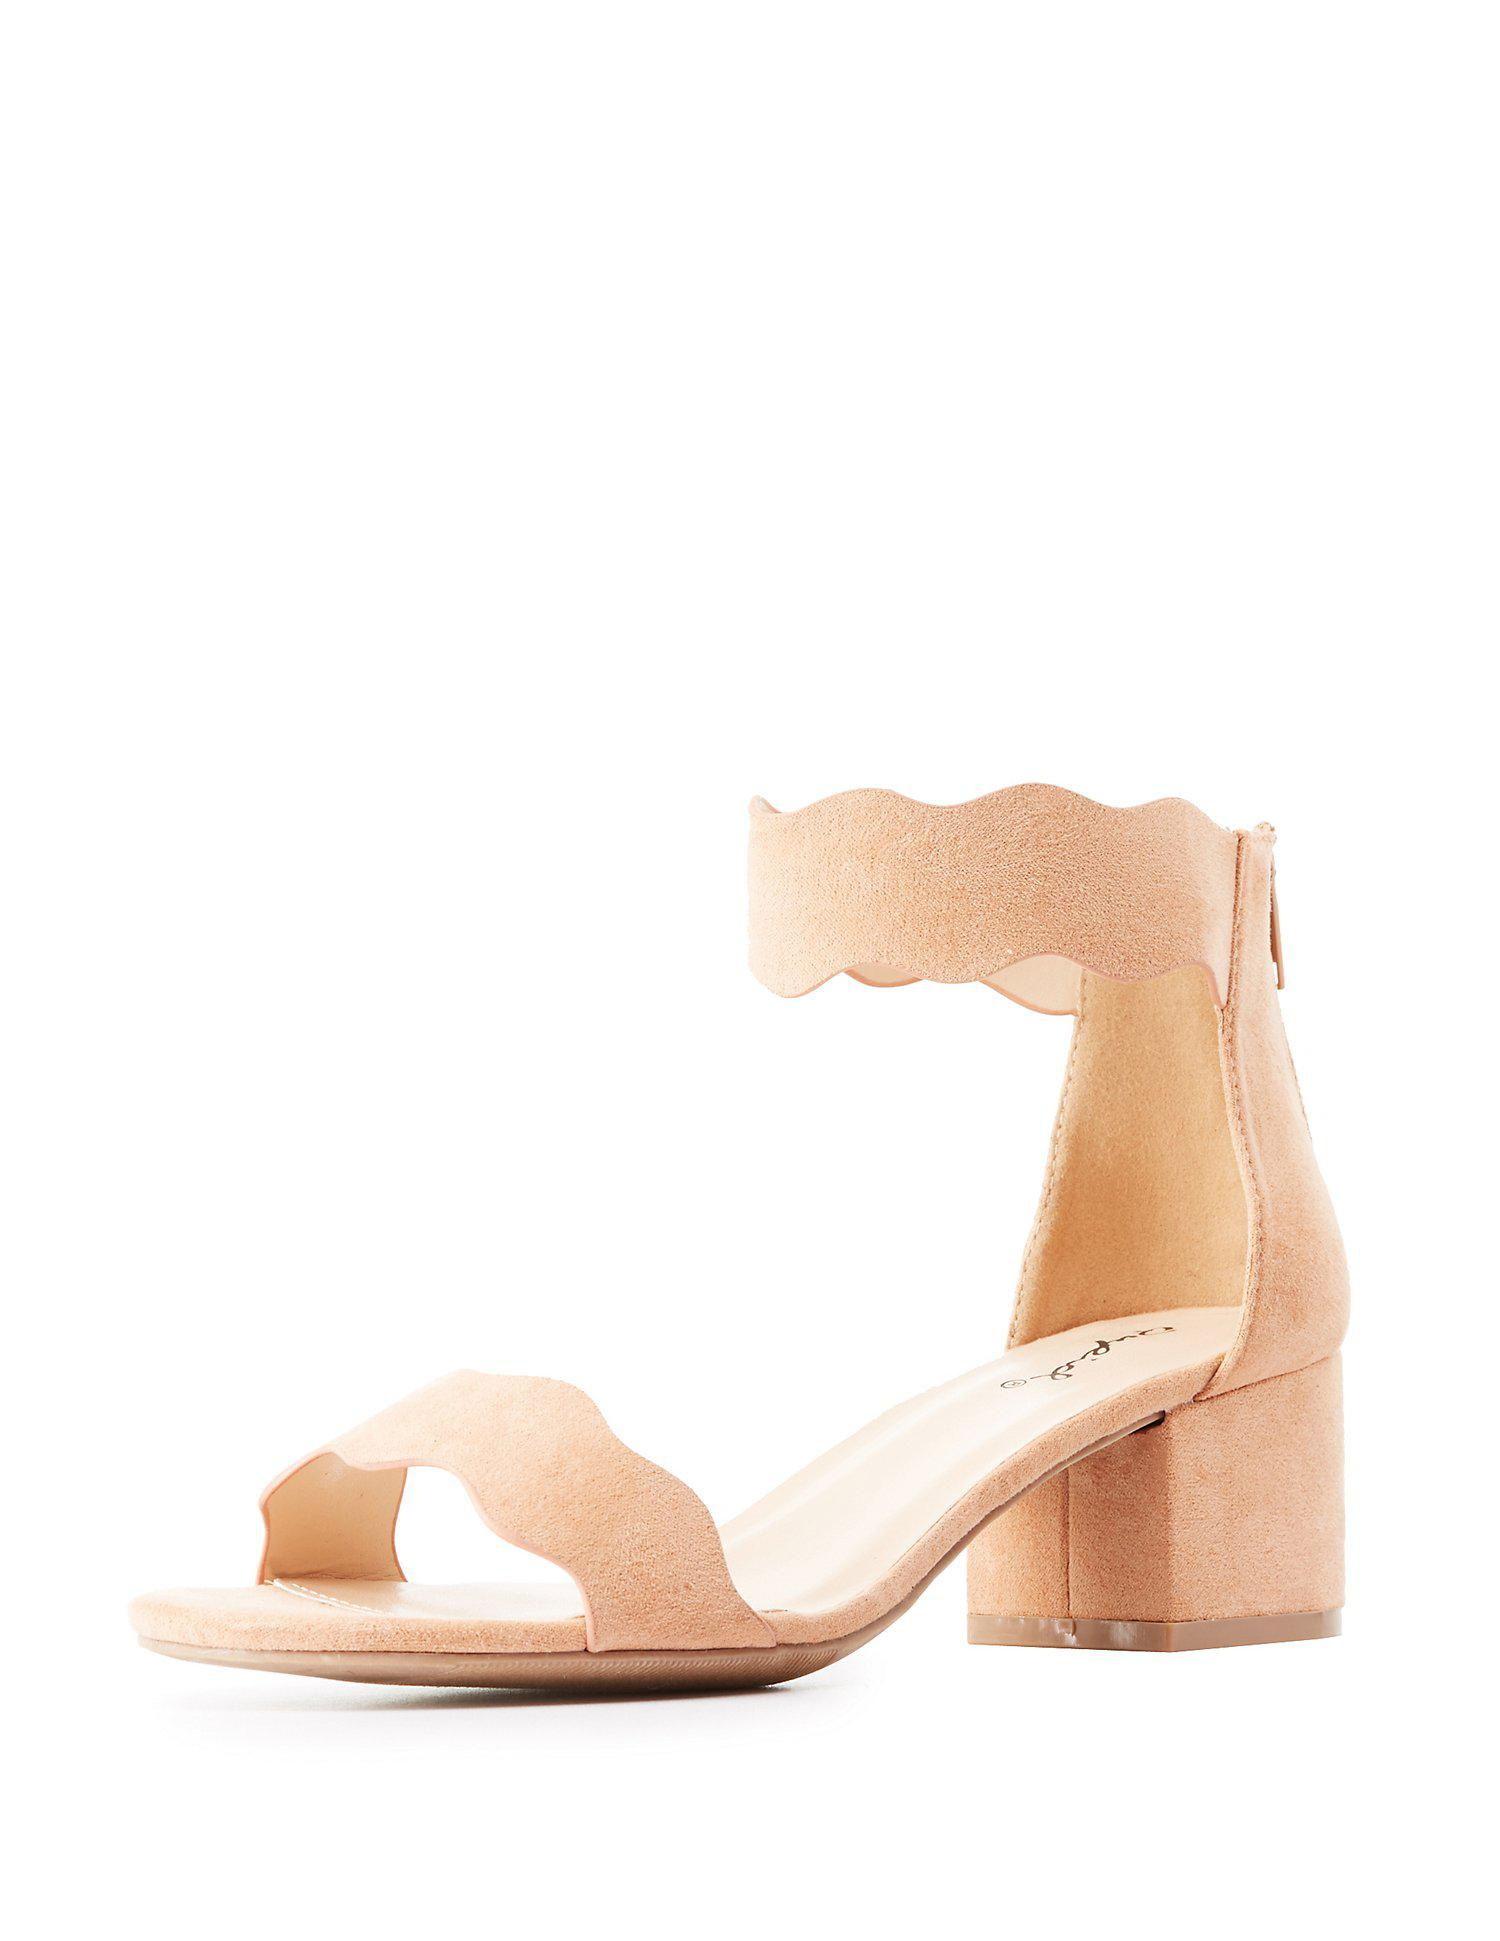 d9a727210c5 Lyst - Charlotte Russe Qupid Scalloped Two-piece Sandals